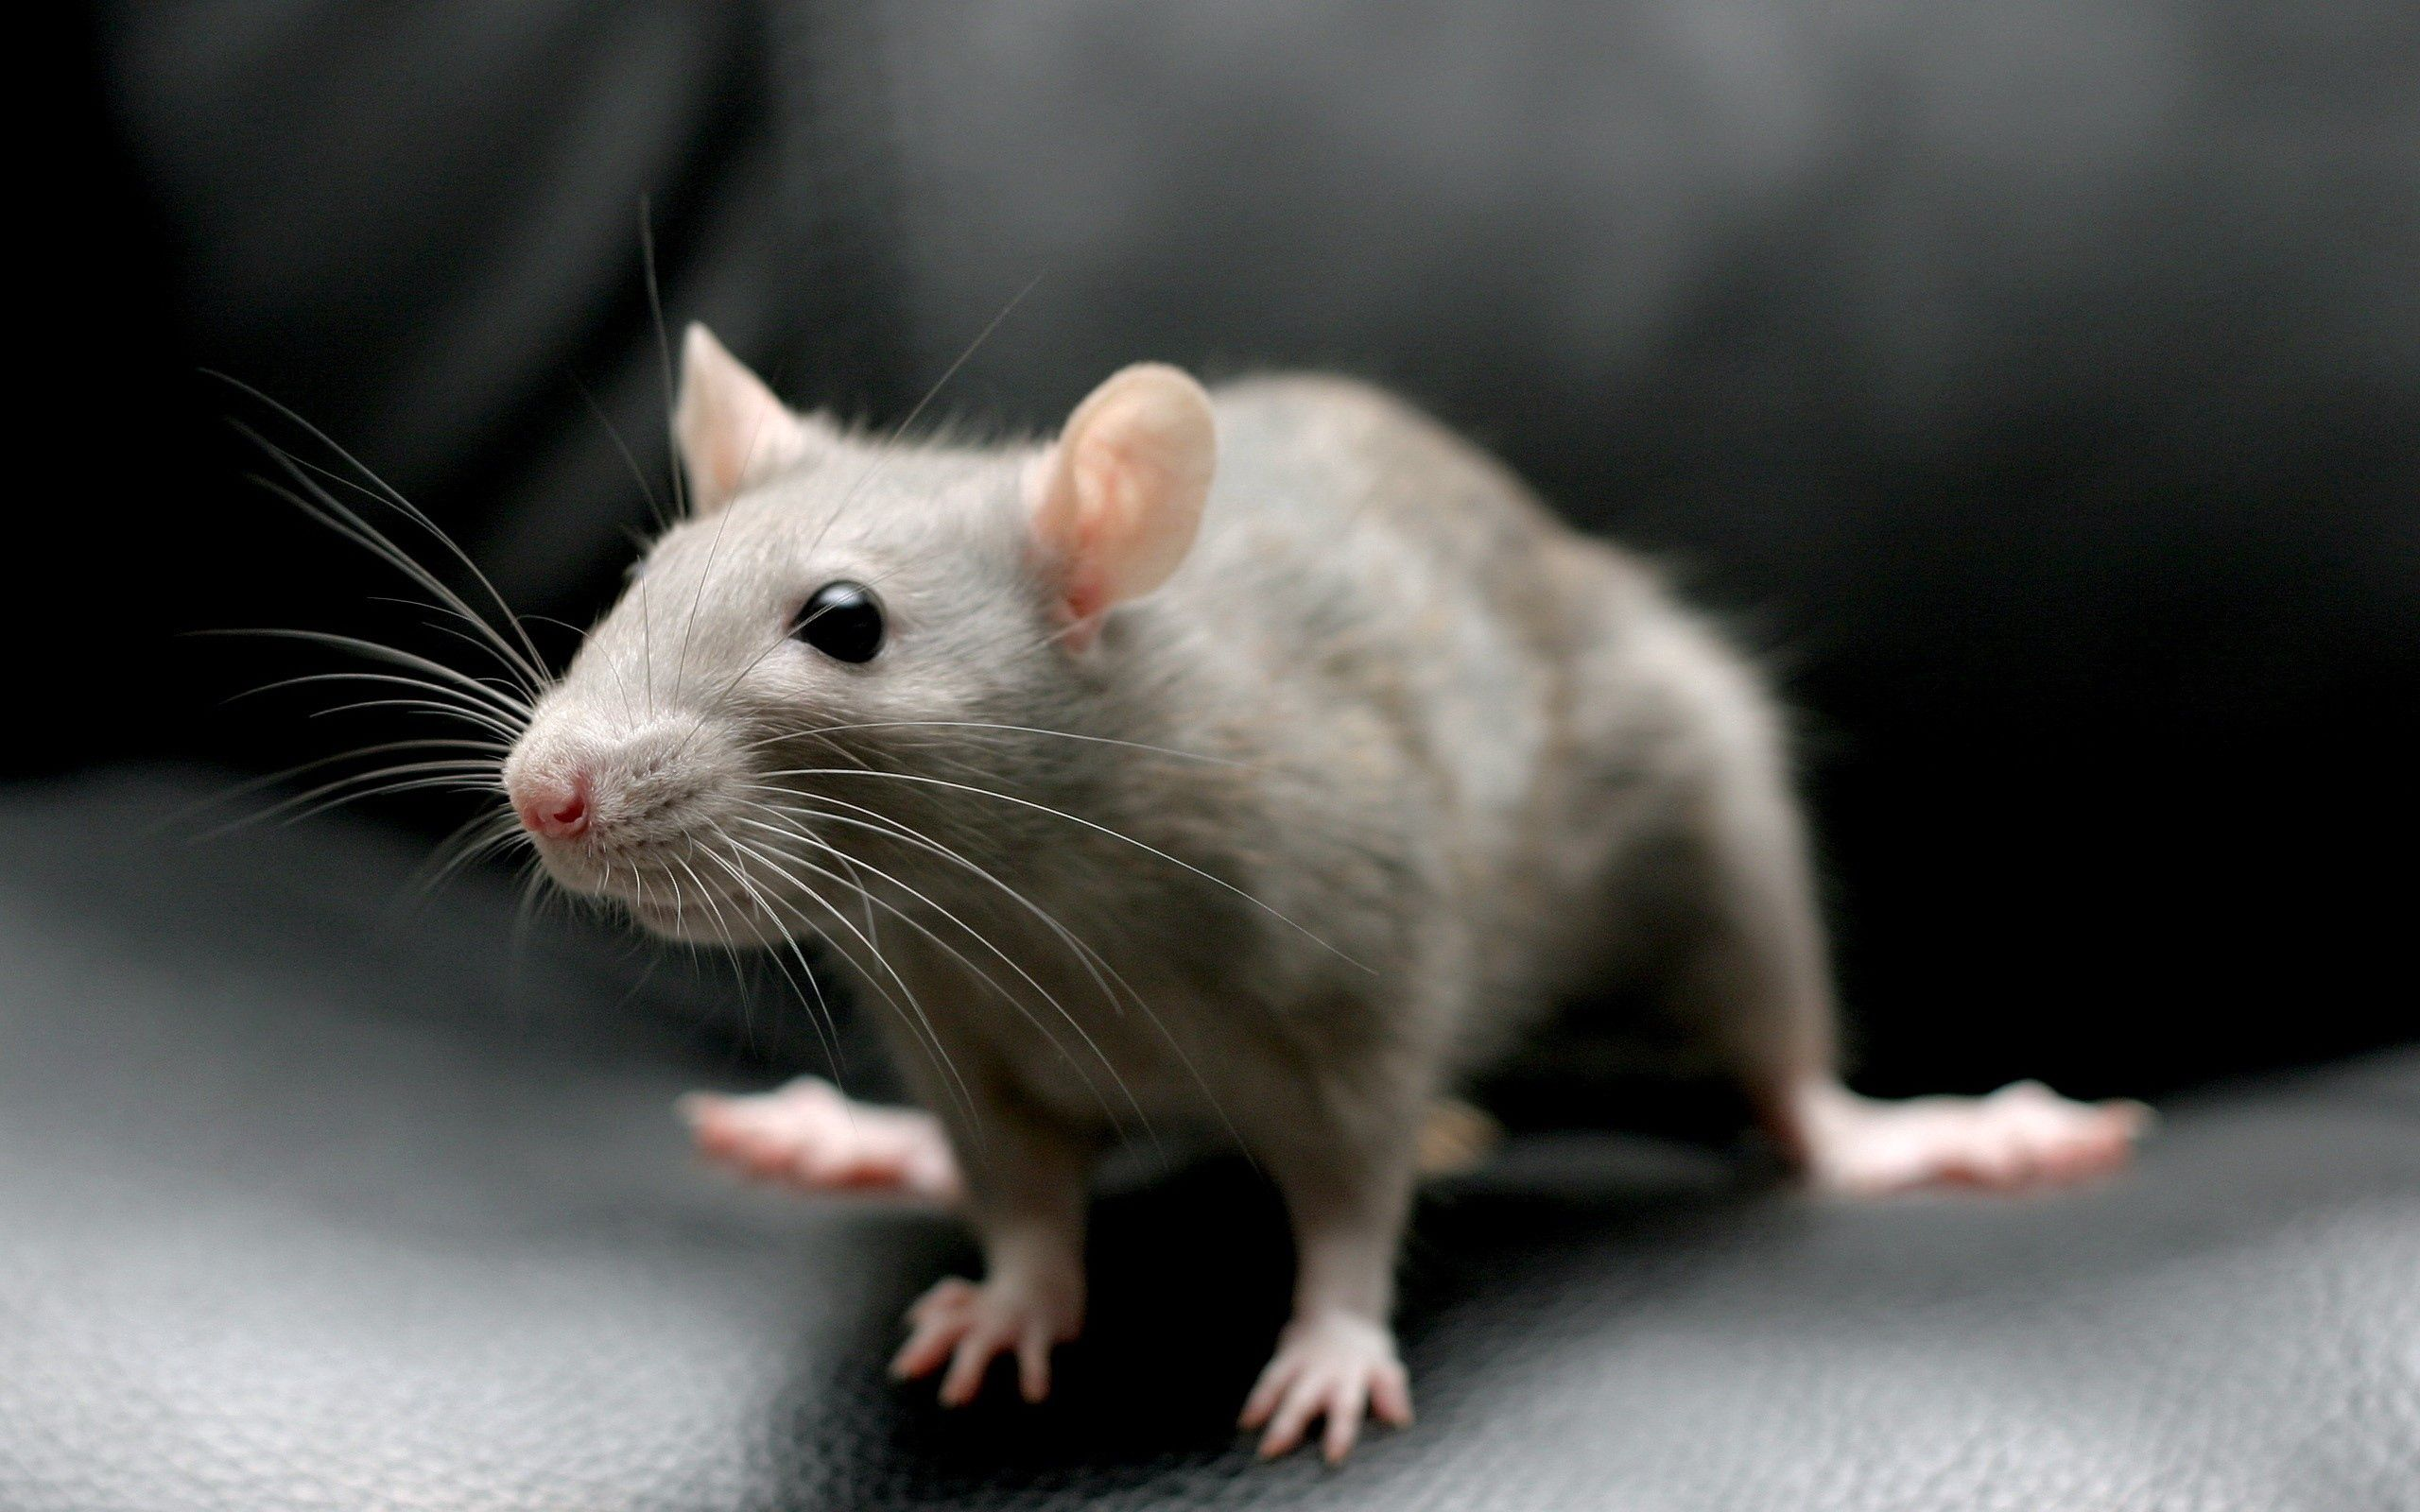 61066 download wallpaper Animals, Mouse, Rodent, Sit, Grey screensavers and pictures for free